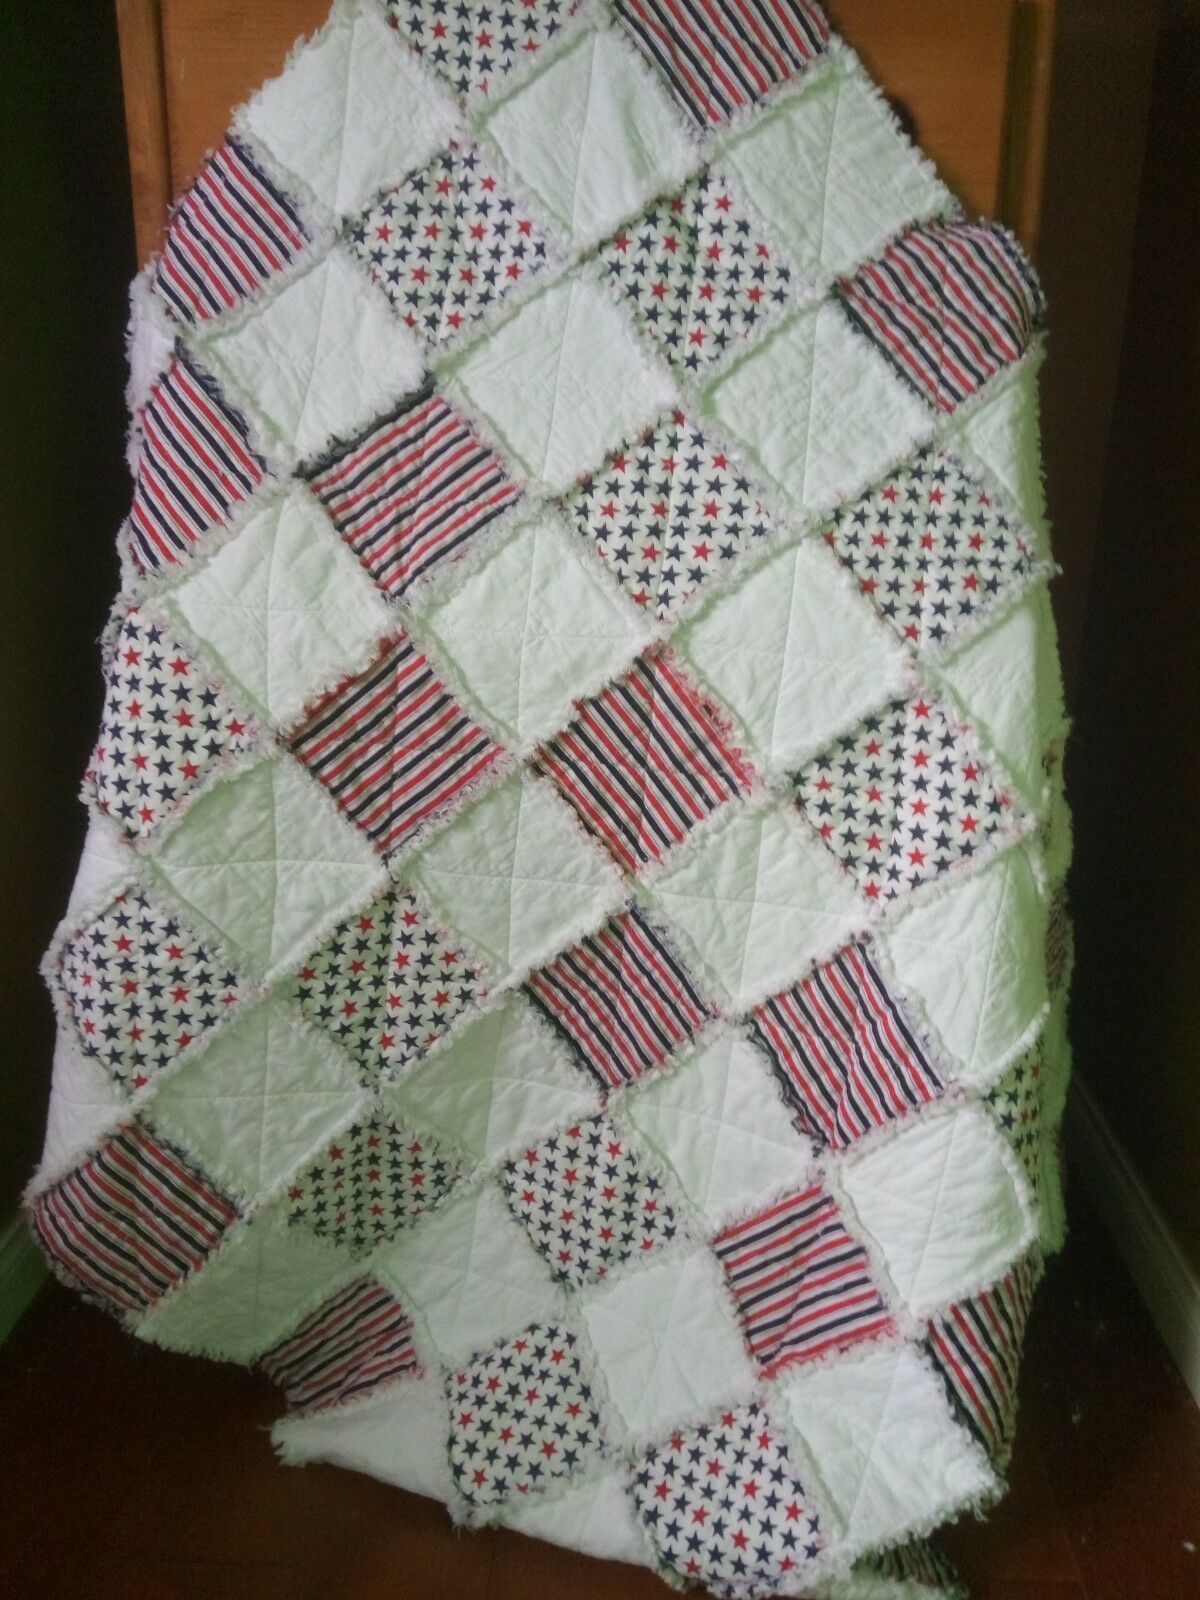 Rag Quilt, Stars and Stripes, Red/White/Blue 4' x 5'